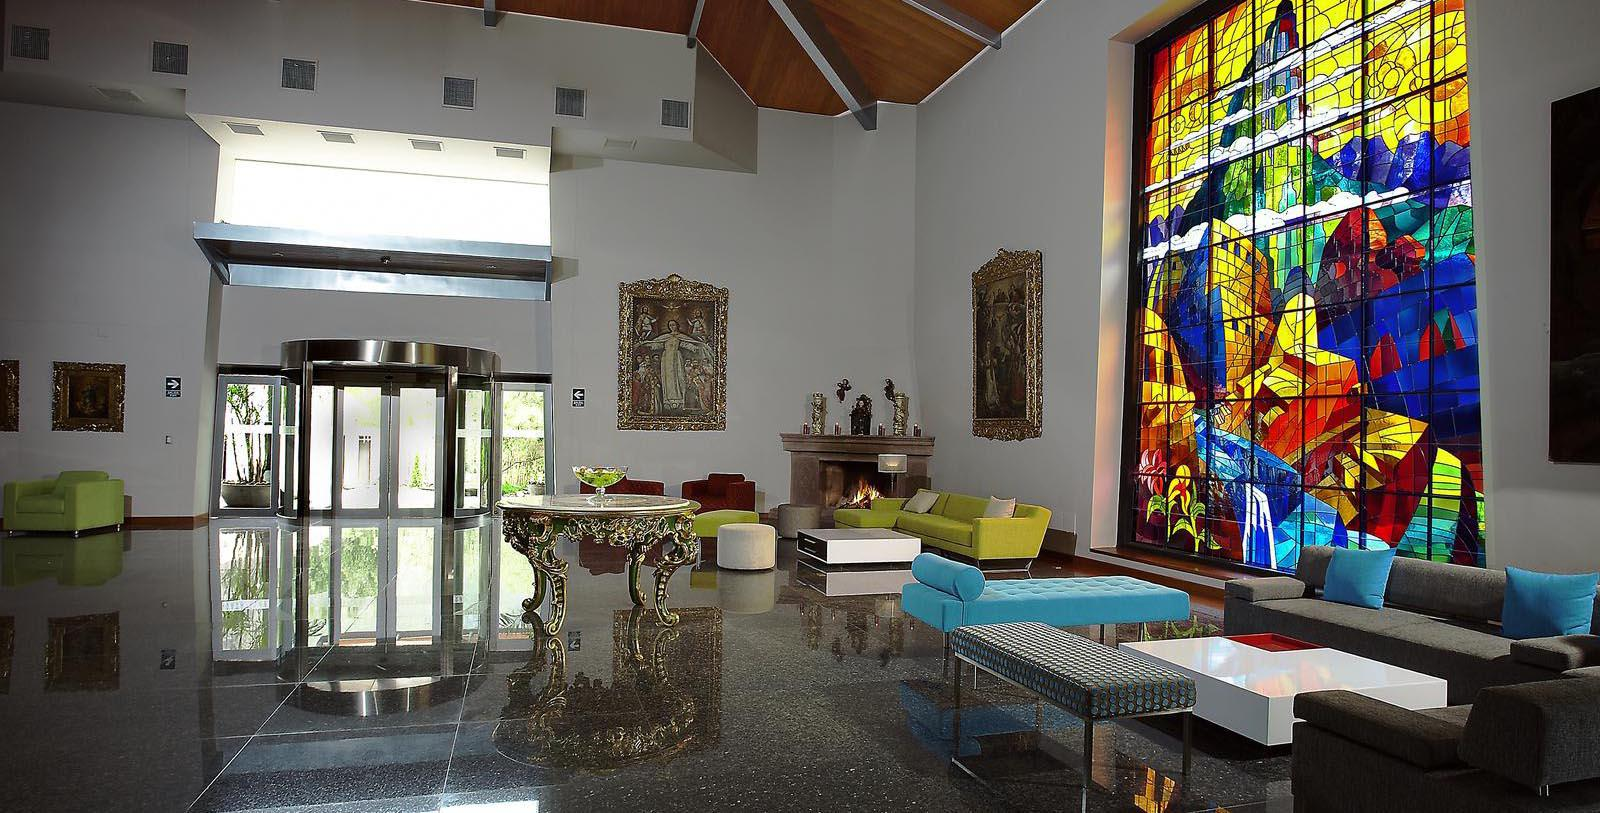 Image of stained glass window in the lobby Aranwa Sacred Valley, 1900, Member of Historic Hotels Worldwide, in Urubamba, Peru, Discover